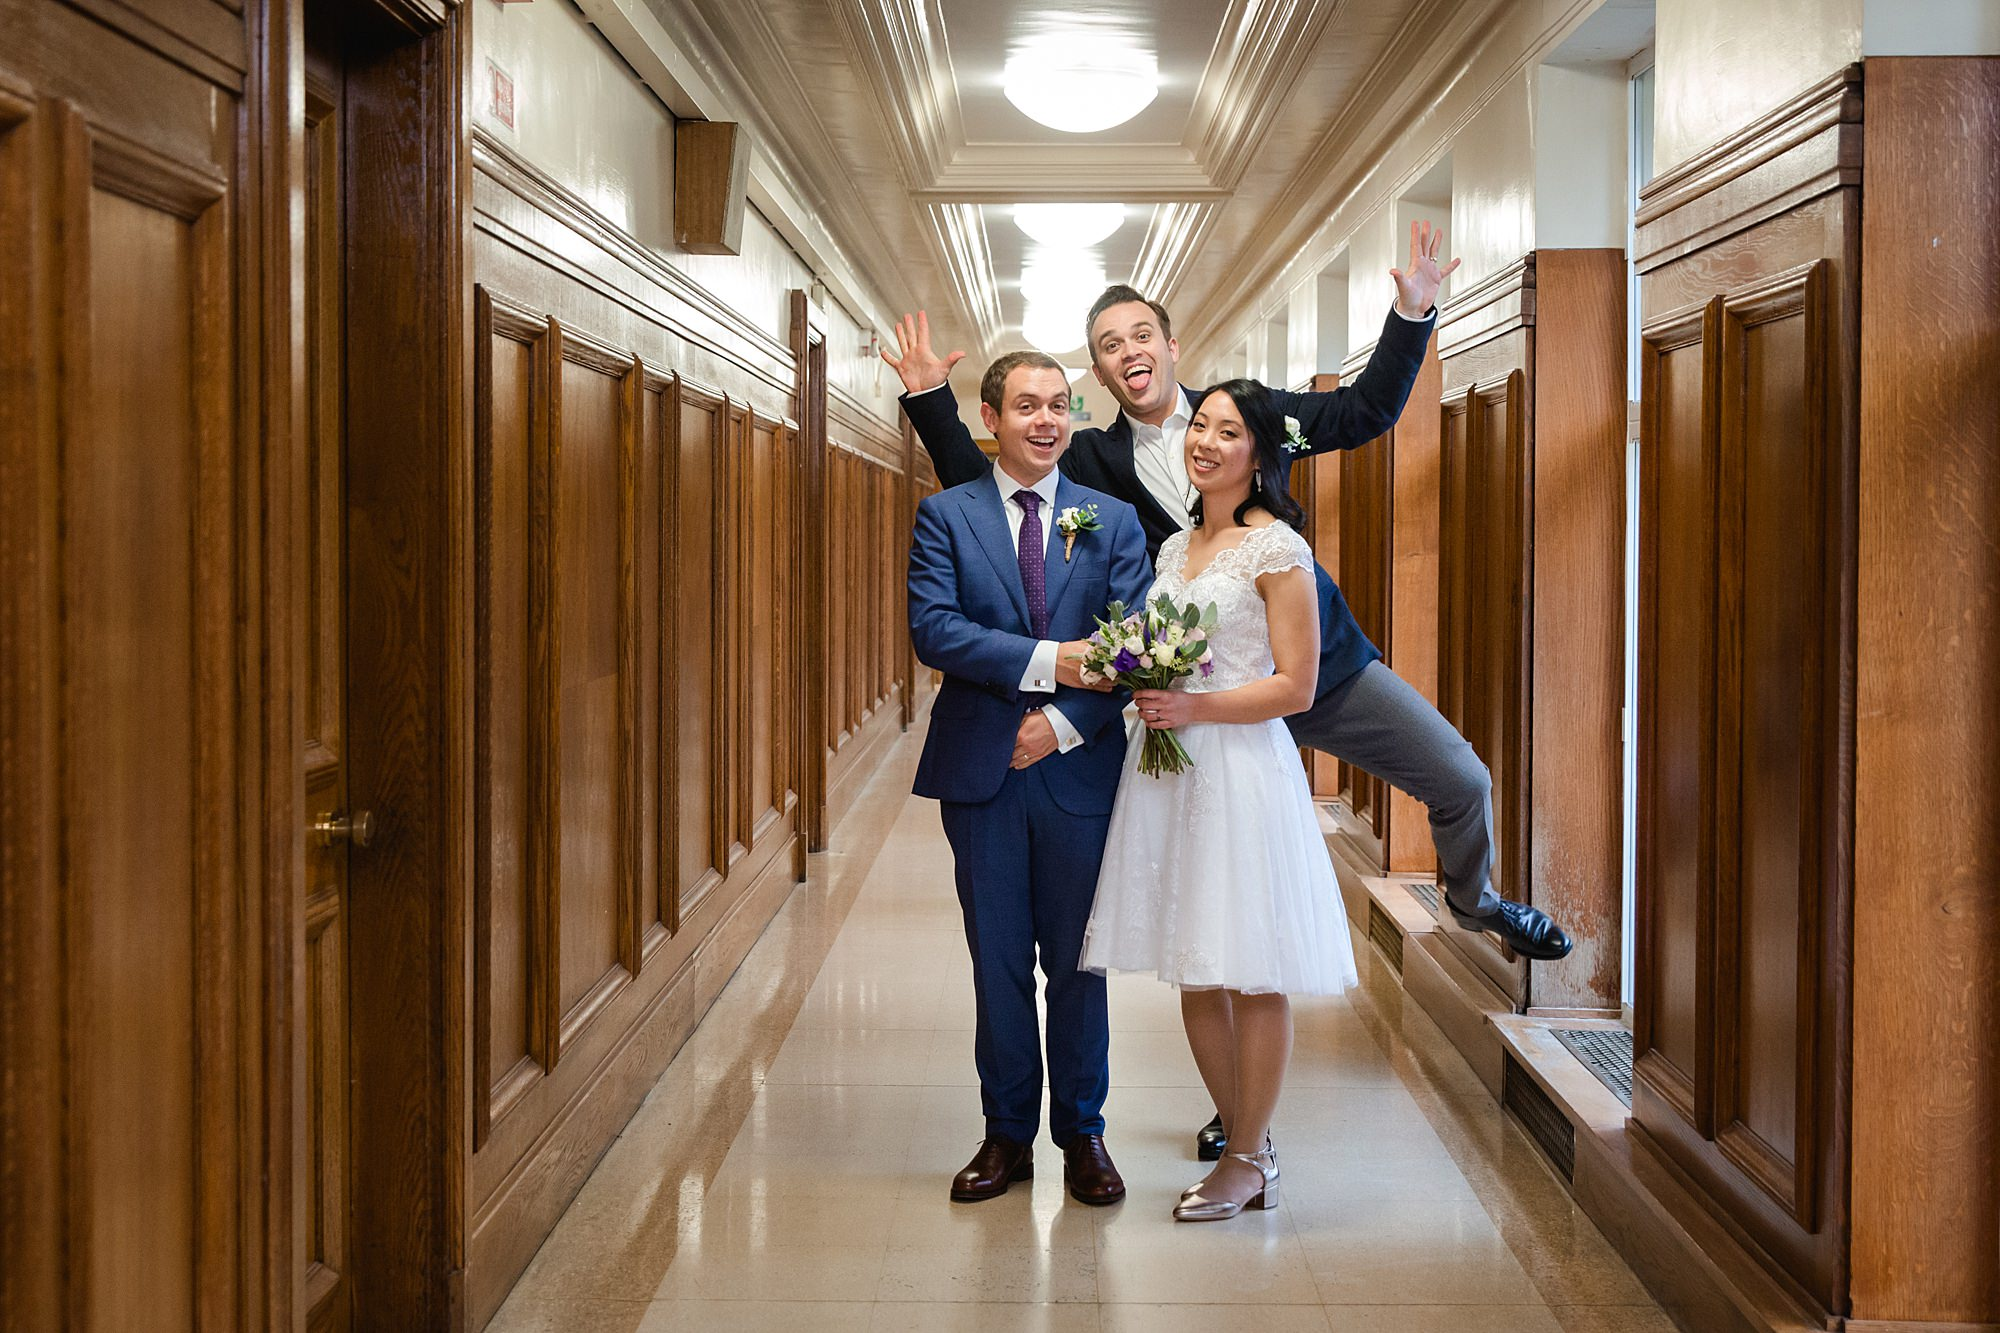 Wandsworth pub wedding fun portrait in town hall